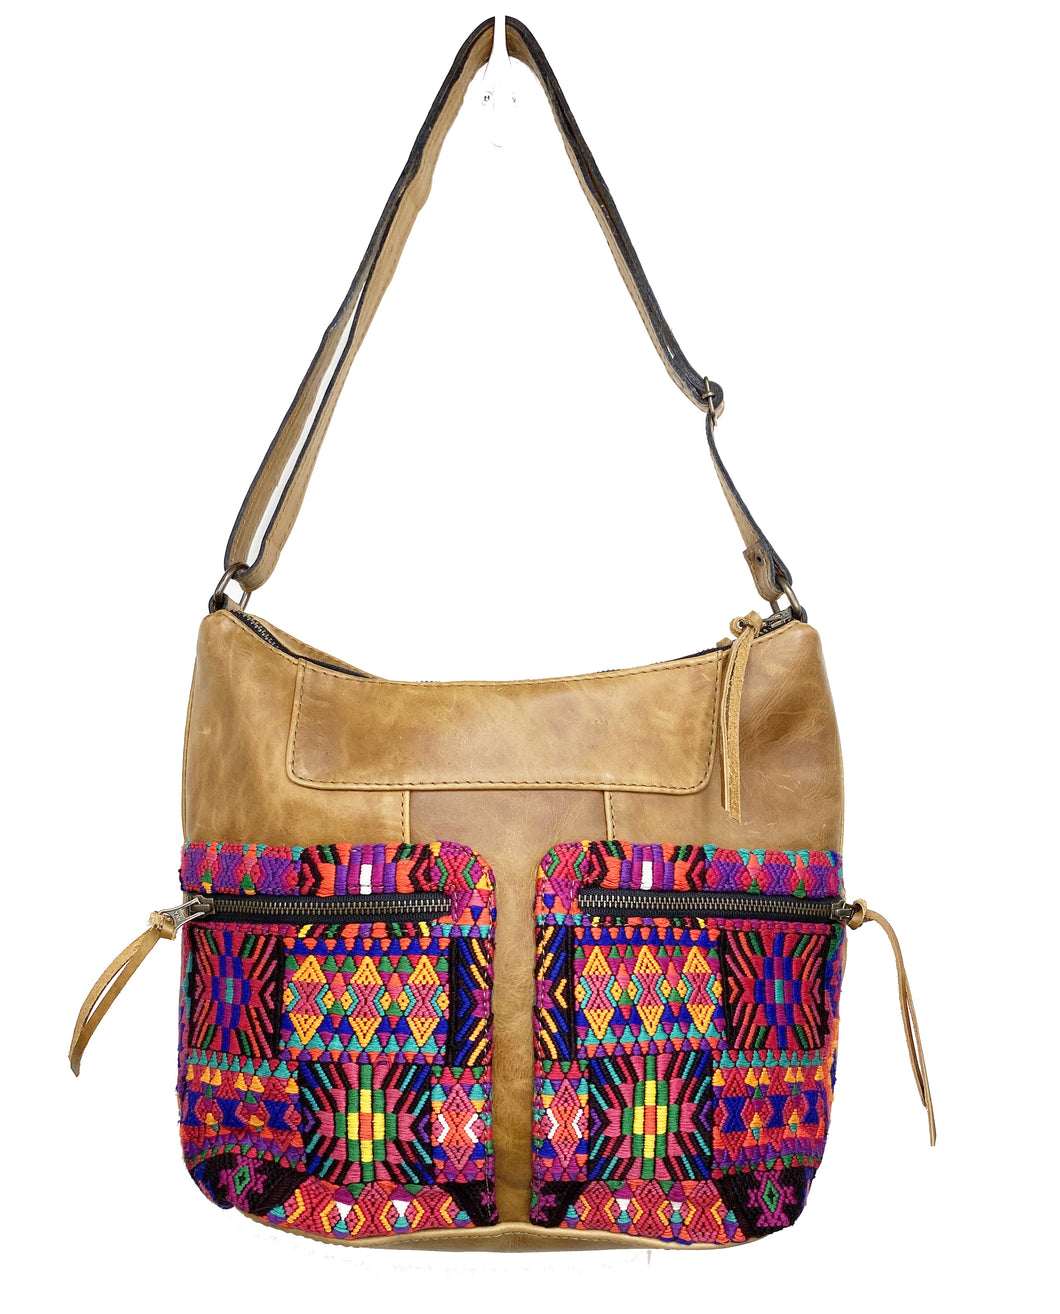 MoonLake Designs Rosa Crossbody in light tan leather with southwestern colors geometric huipil design on double zippered outer pockets and adjustable cross body strap